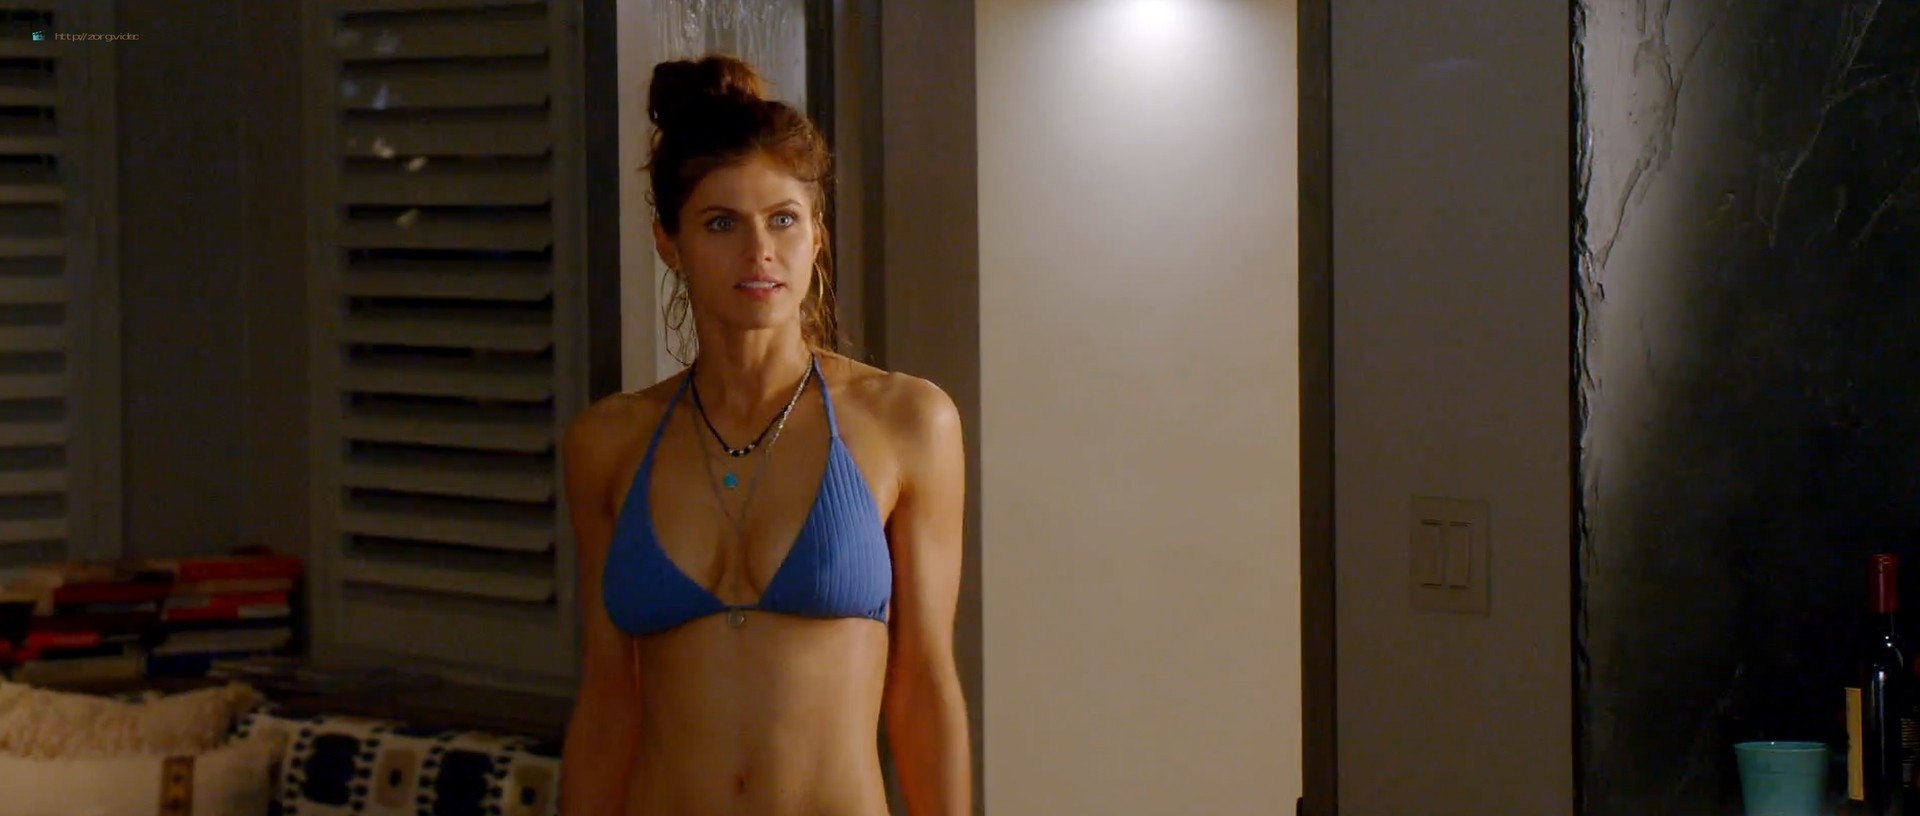 Alexandra Daddario hot busty in a bikini - Why Women Kill (2019) s1e1 HD 1080p Web (2)